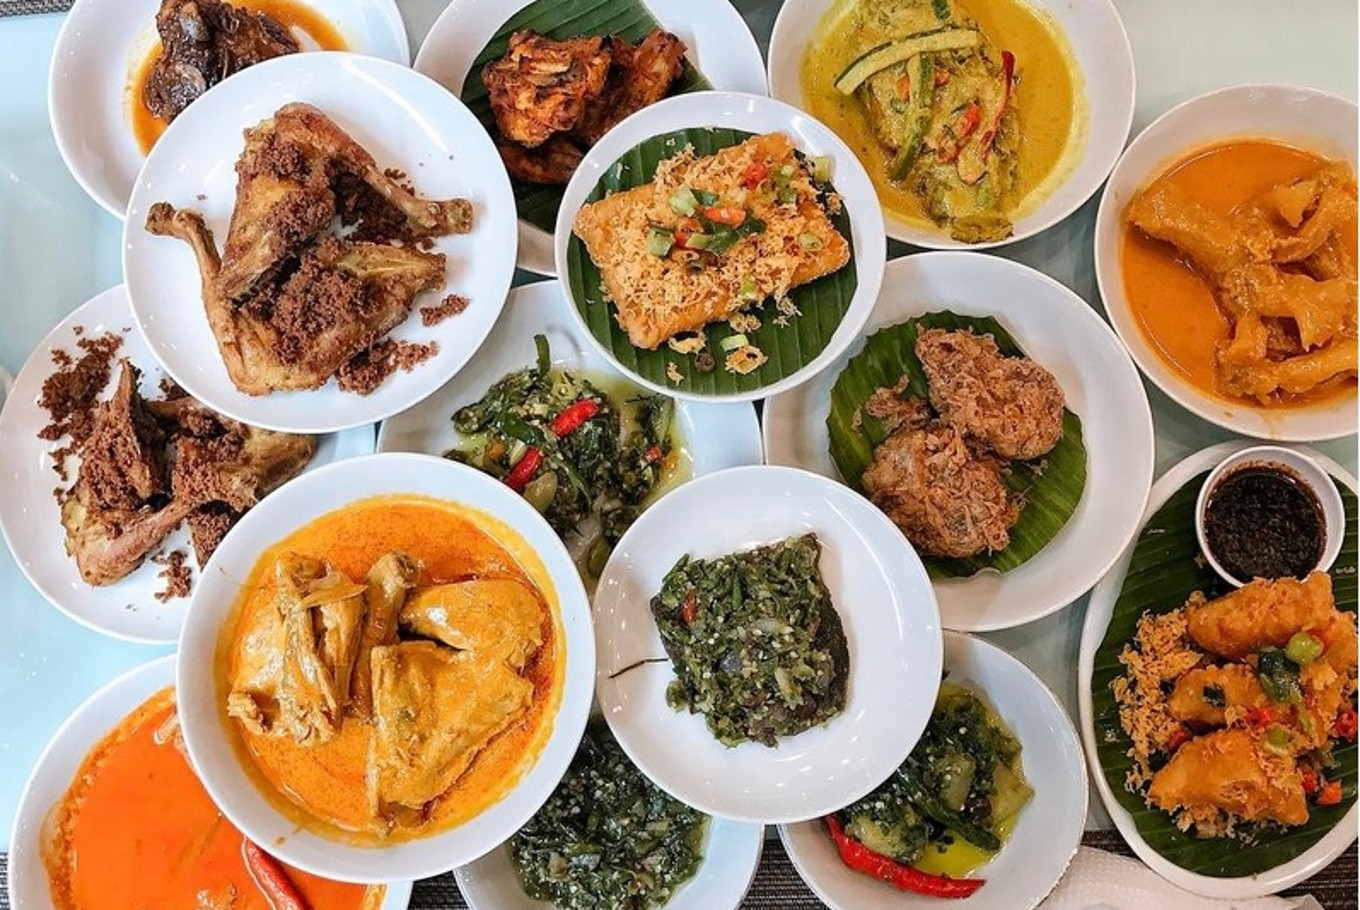 No plastic rice found in Padang restaurant: Police